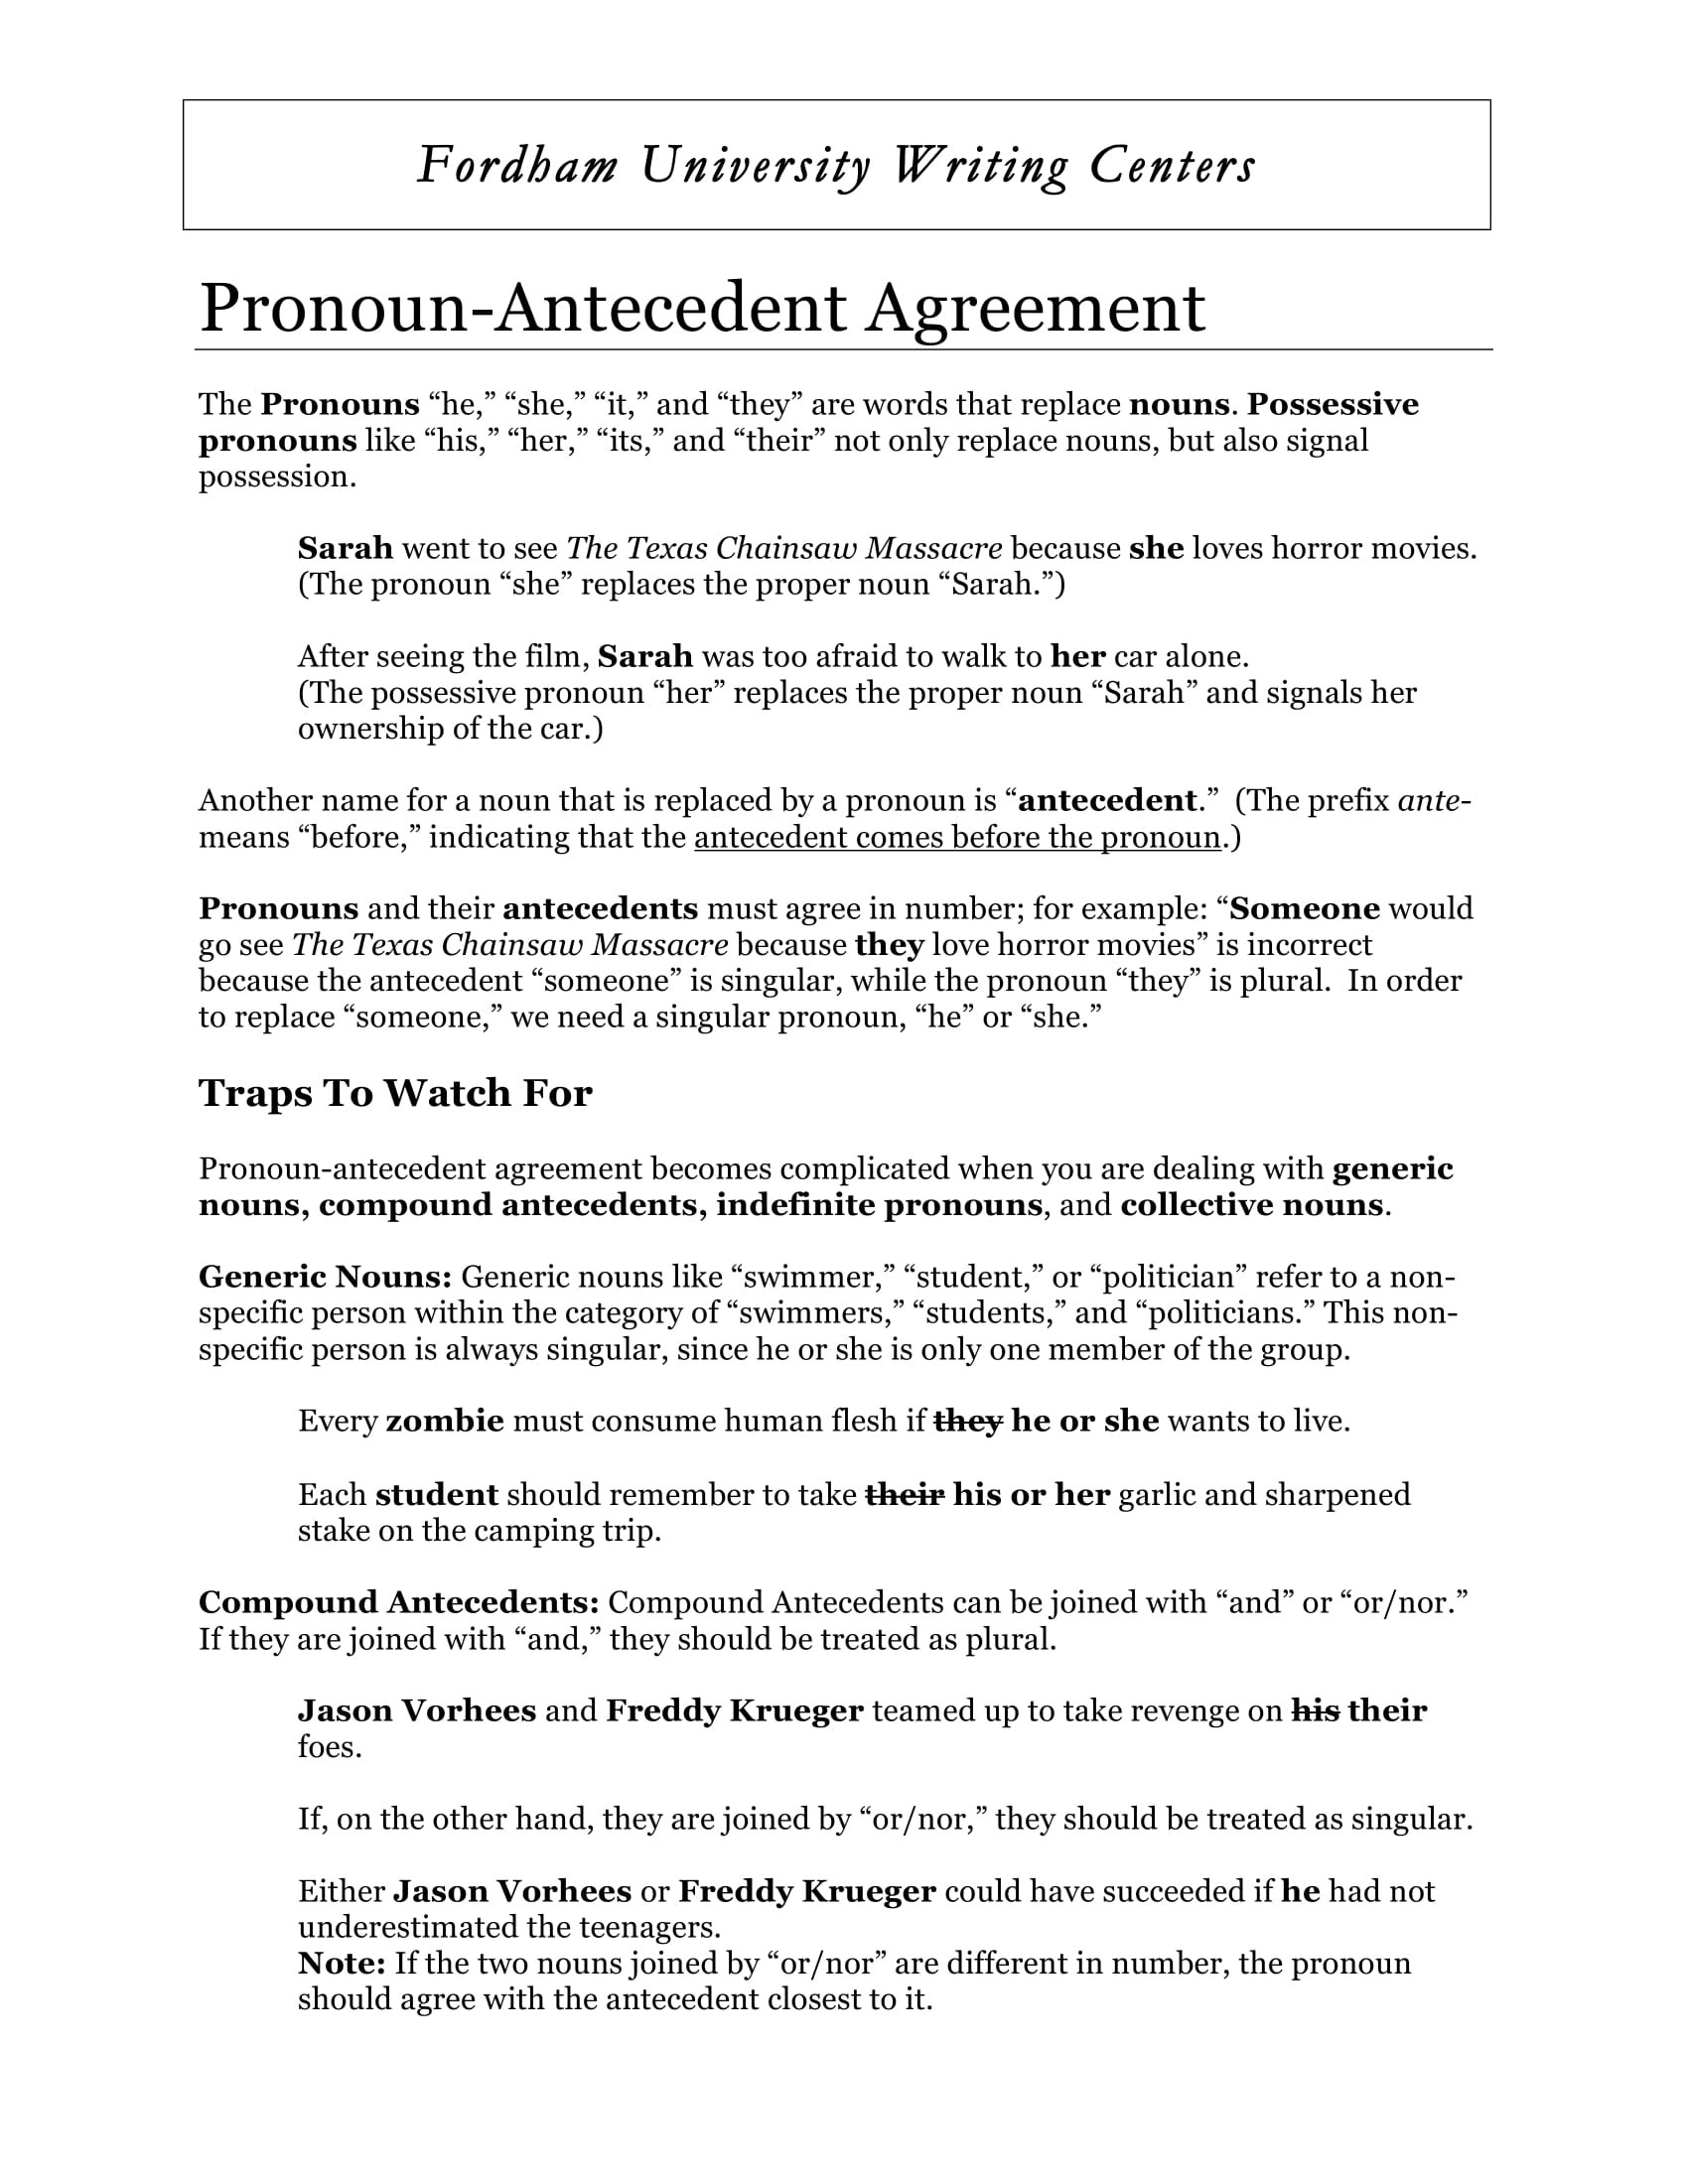 Pronoun Antecedent Agreement Reference Sheet Example